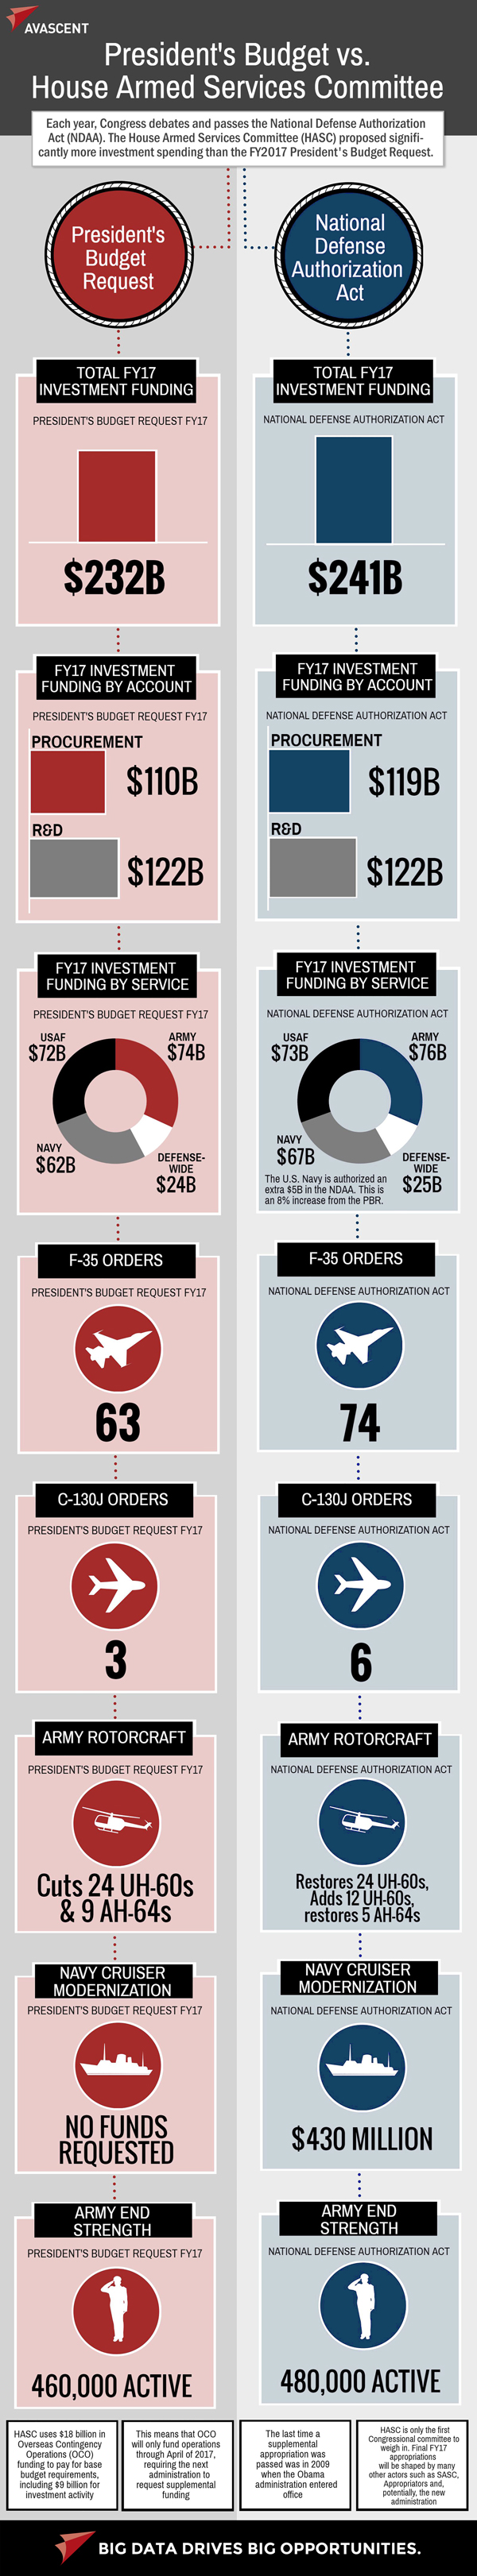 Infographic: President's Budget vs. House Armed Services Committee